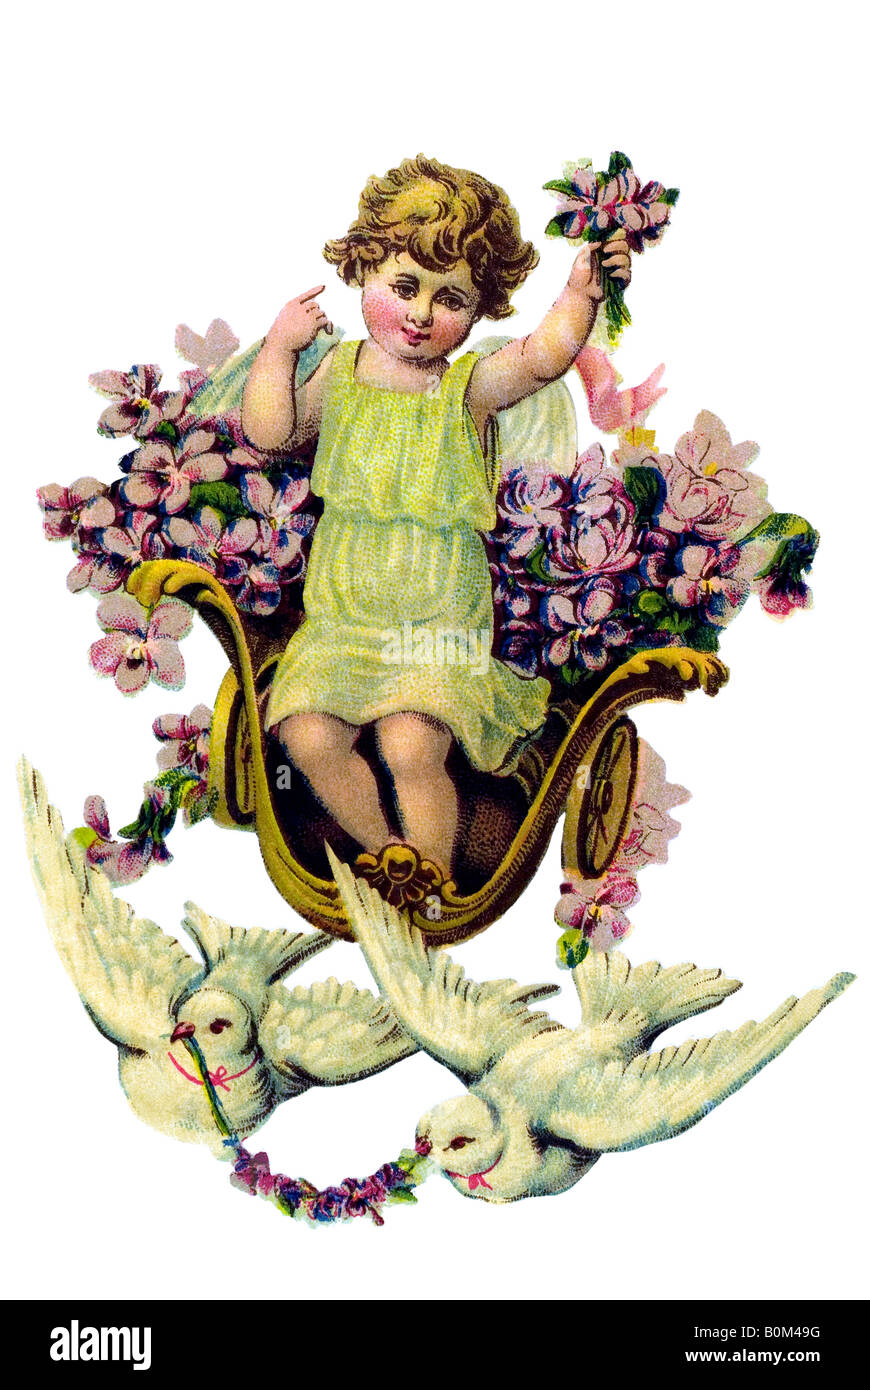 children angel violett carriage two doves 19th century Germany - Stock Image